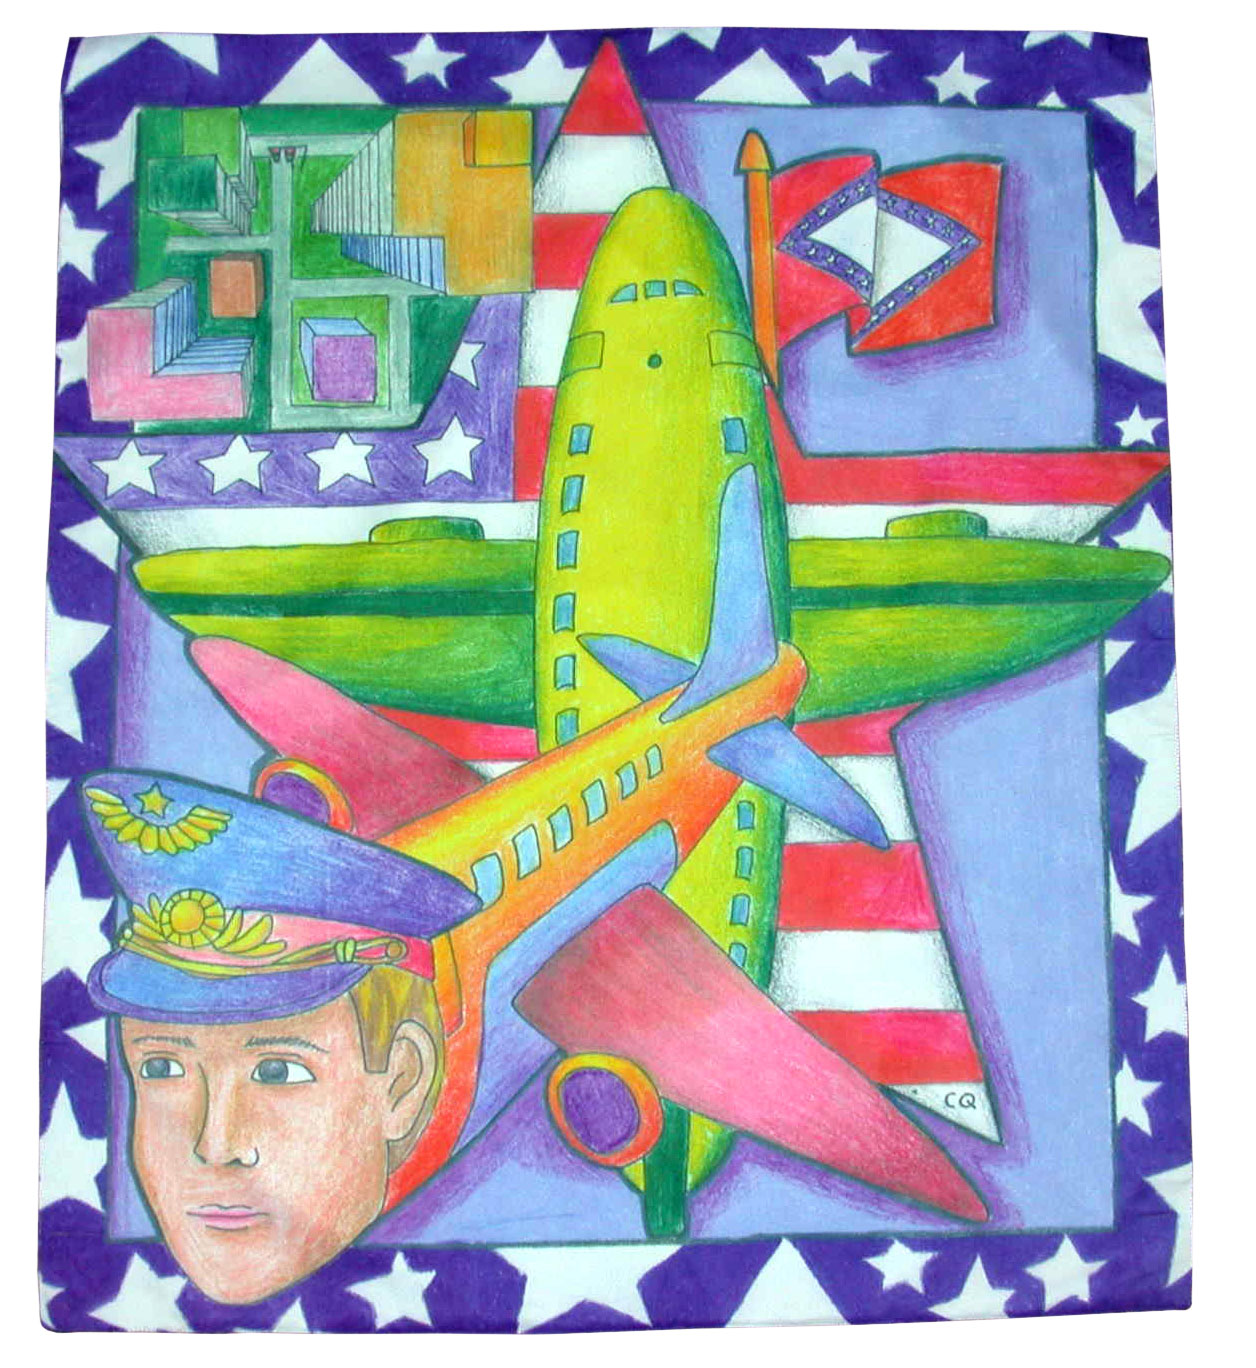 Dye-Sublimation banner. This one hangs in the Bill and Hillary Clinton National Airport.